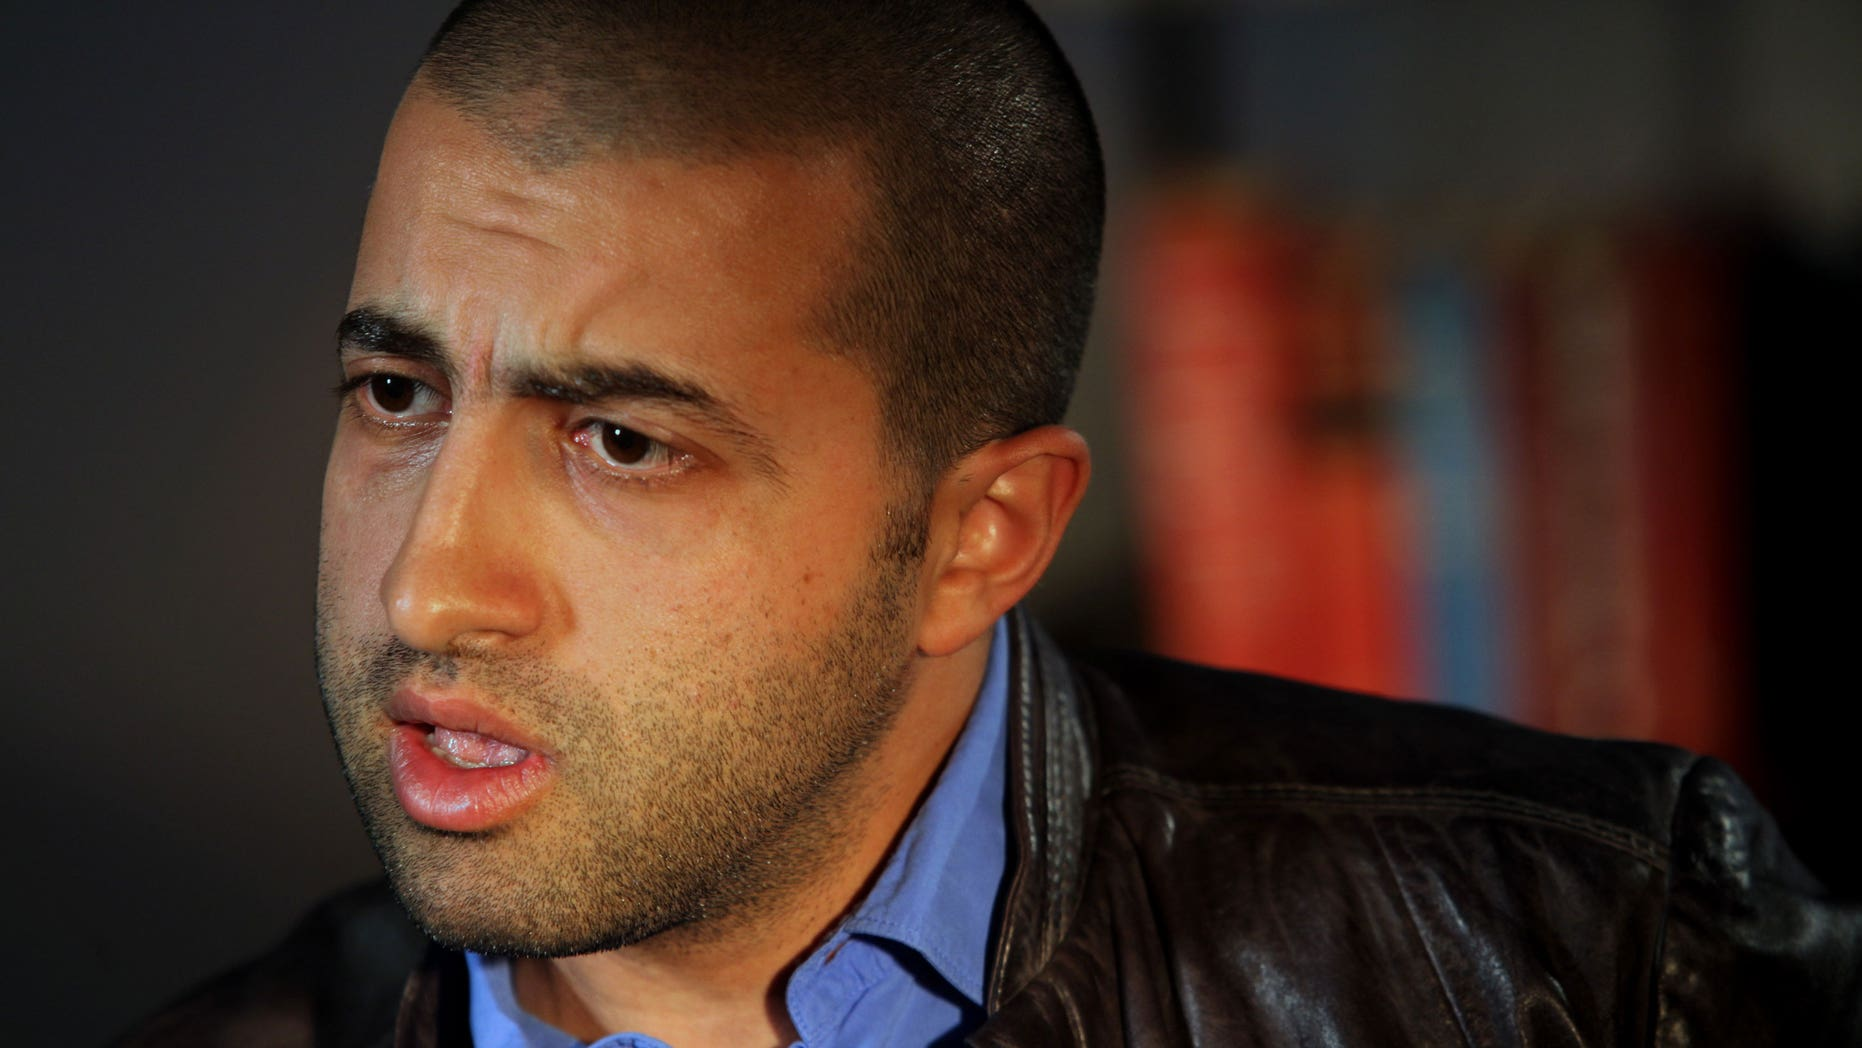 March 3: Mosab Hassan Yousef speaks during an interview in New York. Yousef says he will be killed if he is deported from the United States to the West Bank. The oldest son of one of Hamas' founders, he was an Israeli spy for a decade, and he abandoned Islam for Christianity, further marking him a traitor. (AP)